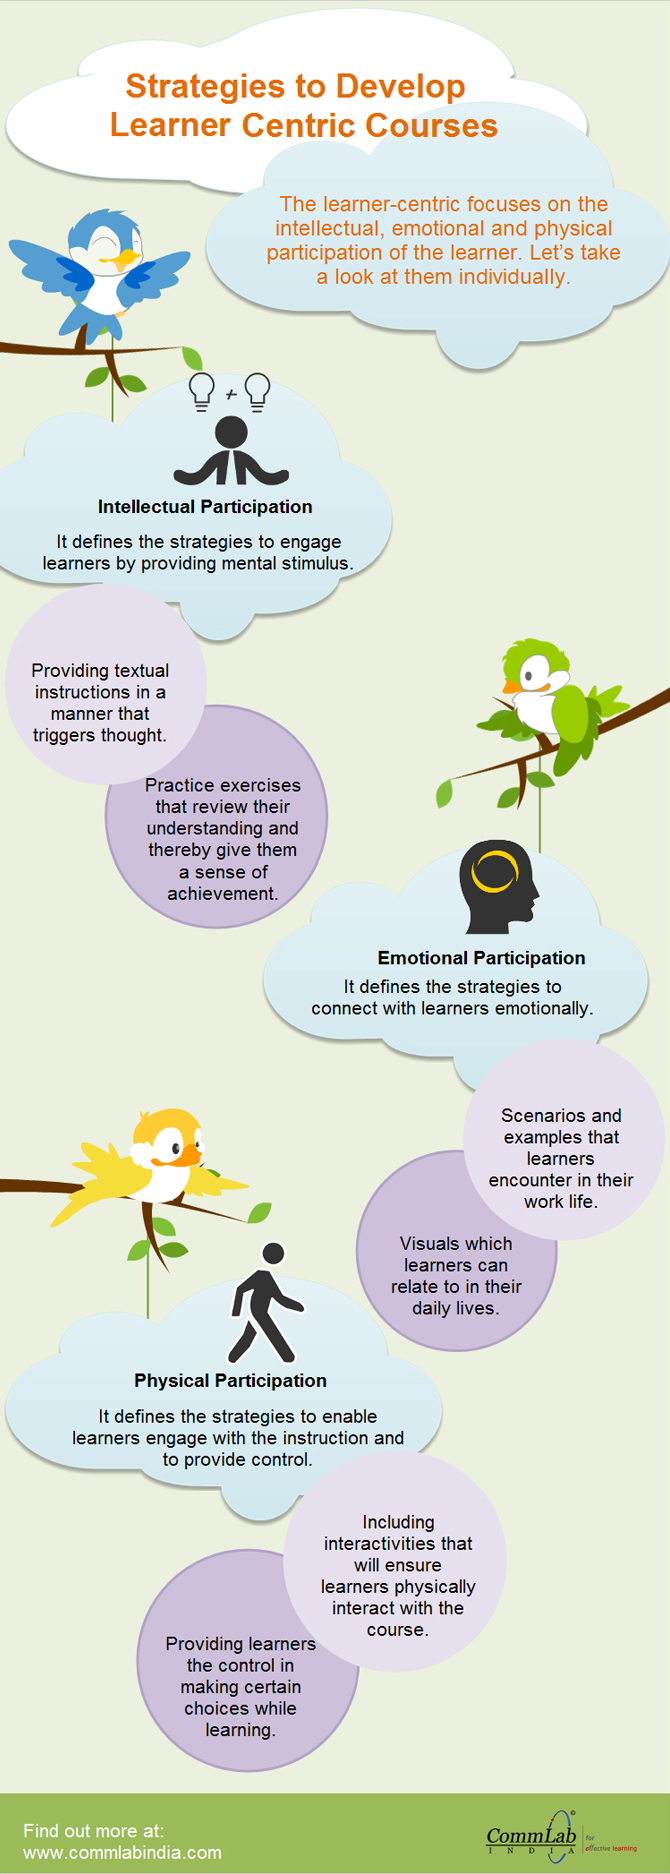 E-learning Design - Presenting Content in a Learner-Friendly Manner [Infographic]